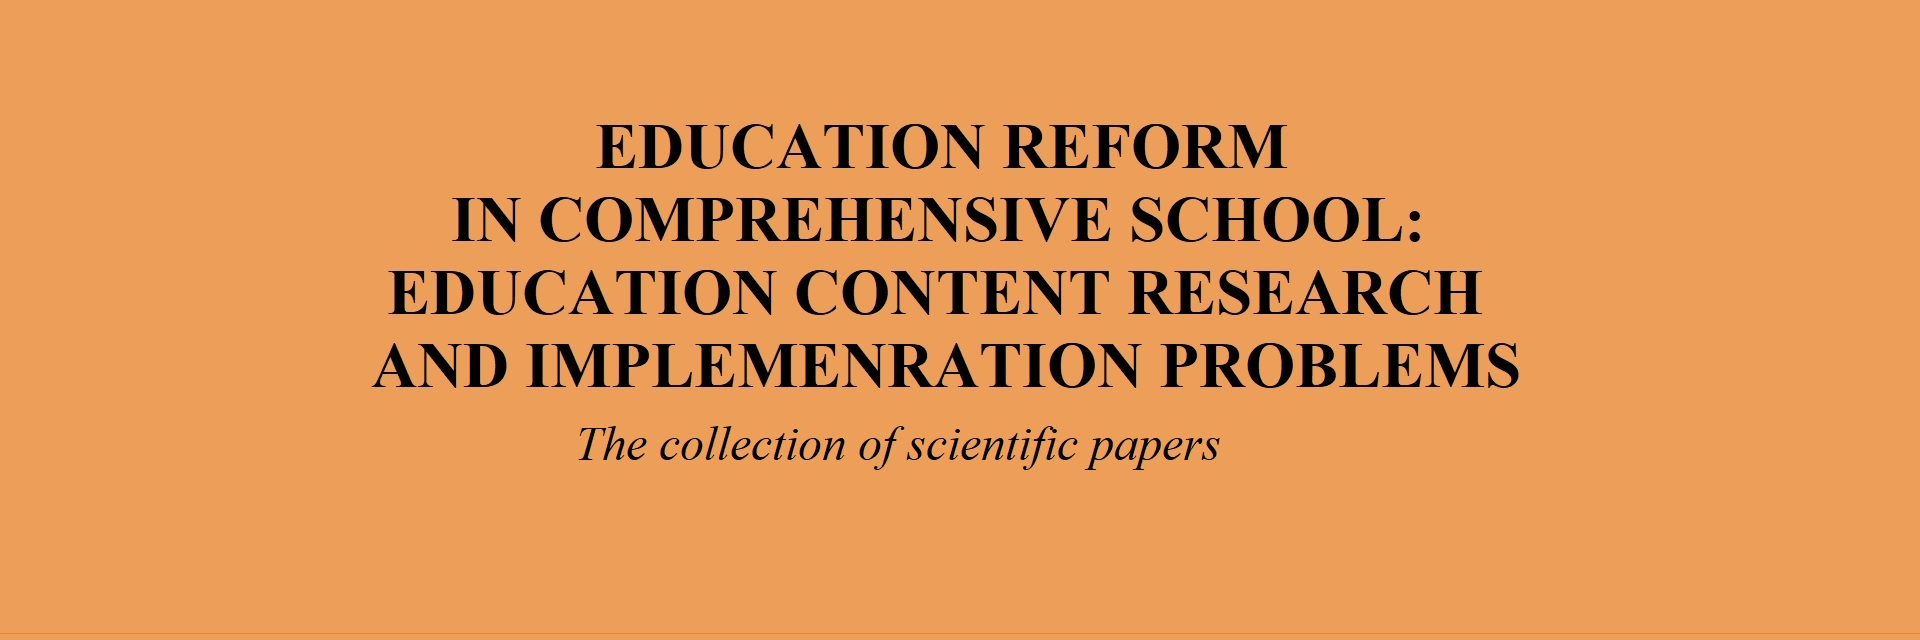 Education Reform in Comprehensive School: Education Content Research and Implementation Problems